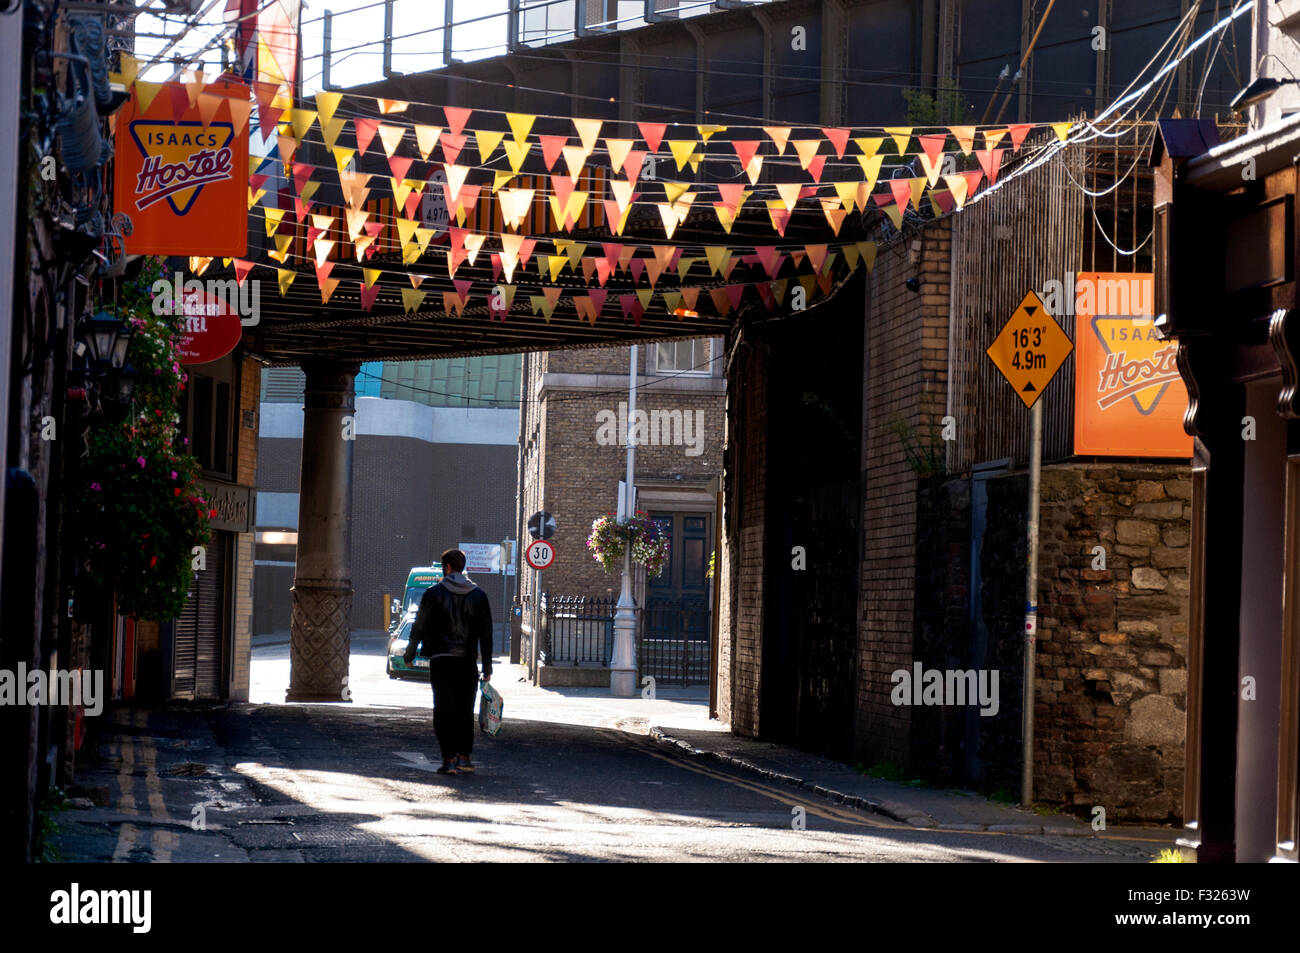 Frenchman's Lane,  Dublin 1, Ireland - Stock Image